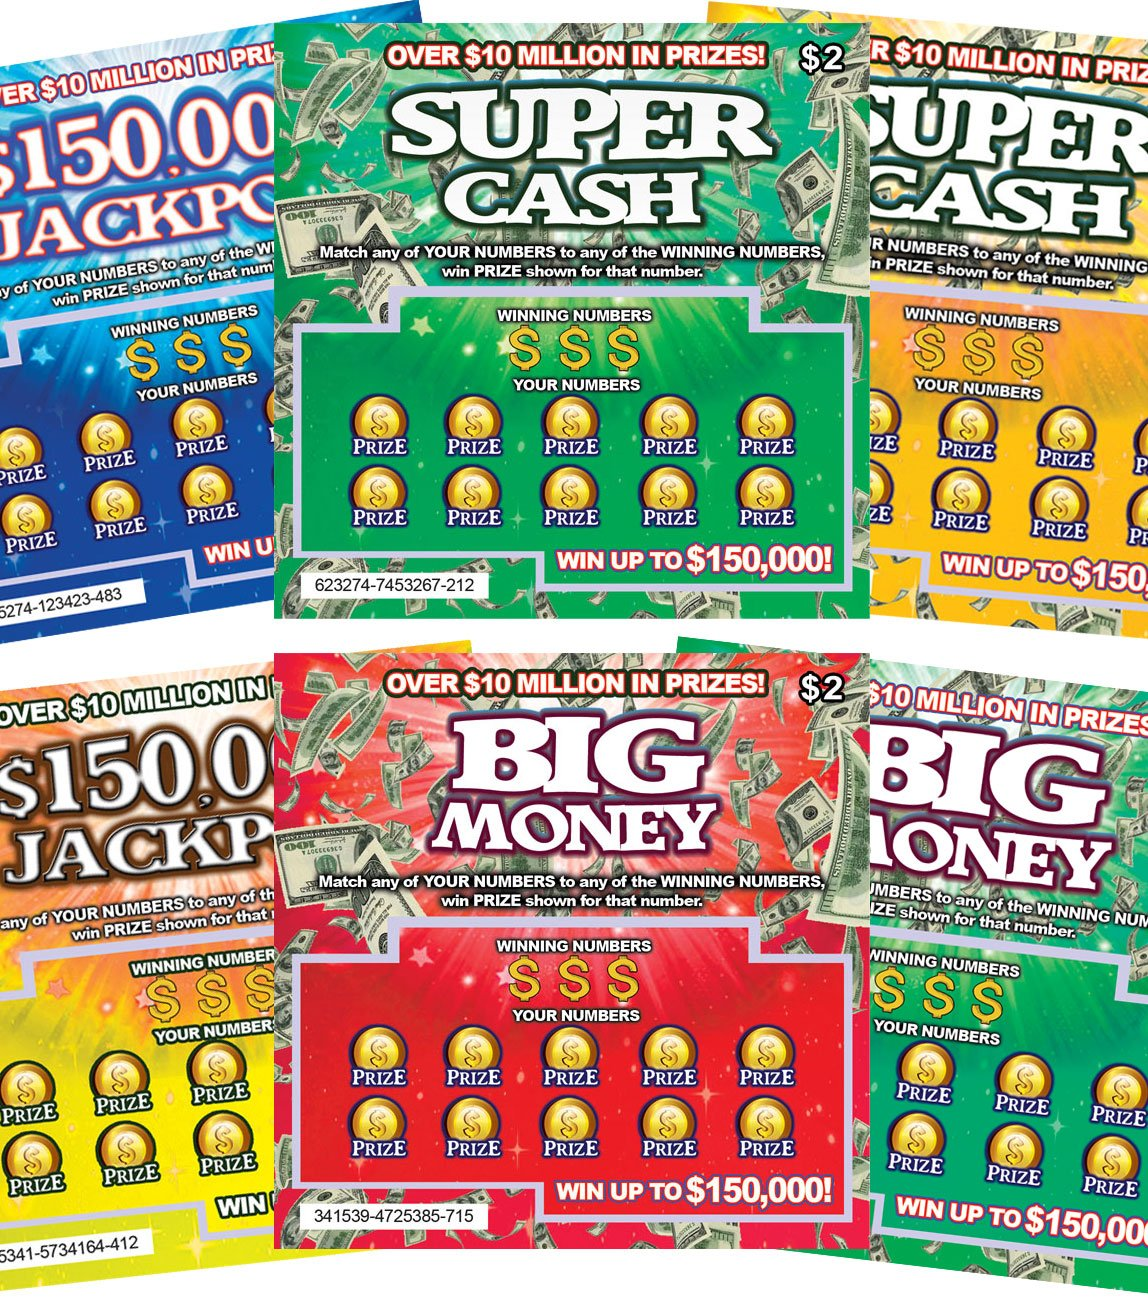 FMPLT- Fake Lottery Tickets Scratch off - ALL Win $50,000 - The Ultimate Prank